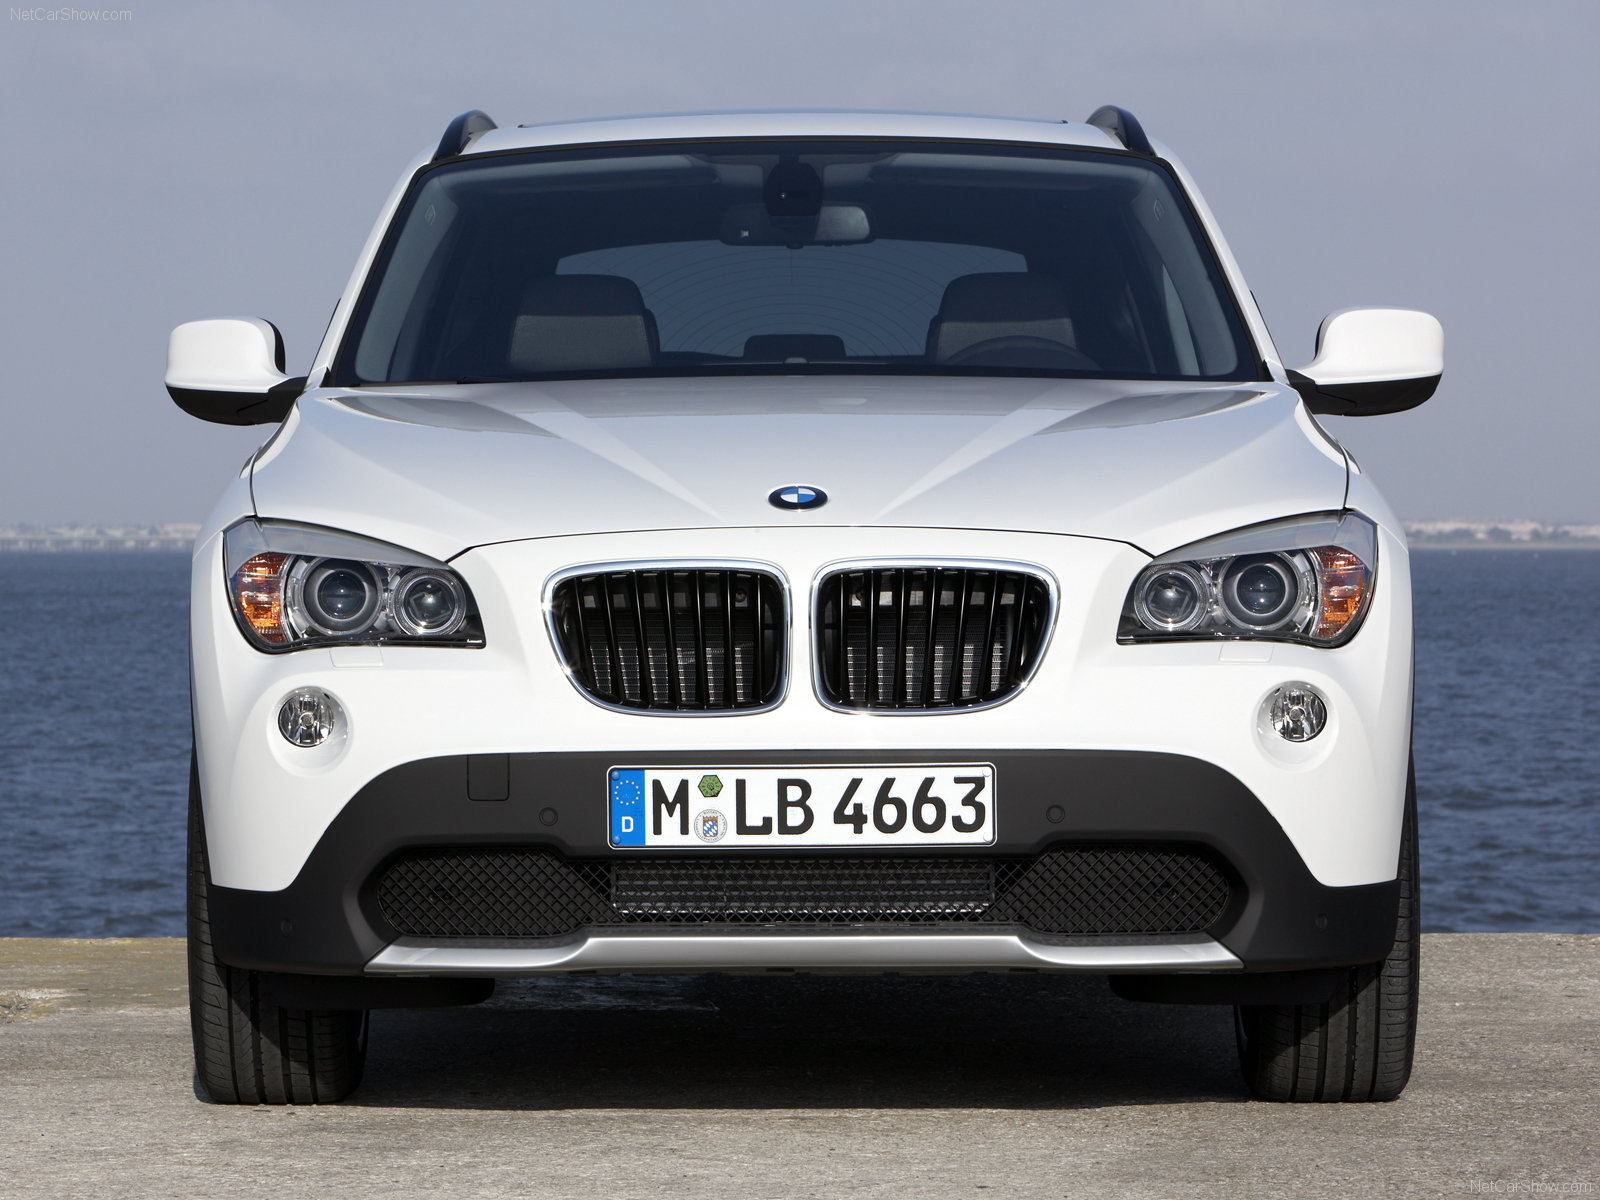 Bmw Cars Images With Price Bmw Cars Price Please Wait